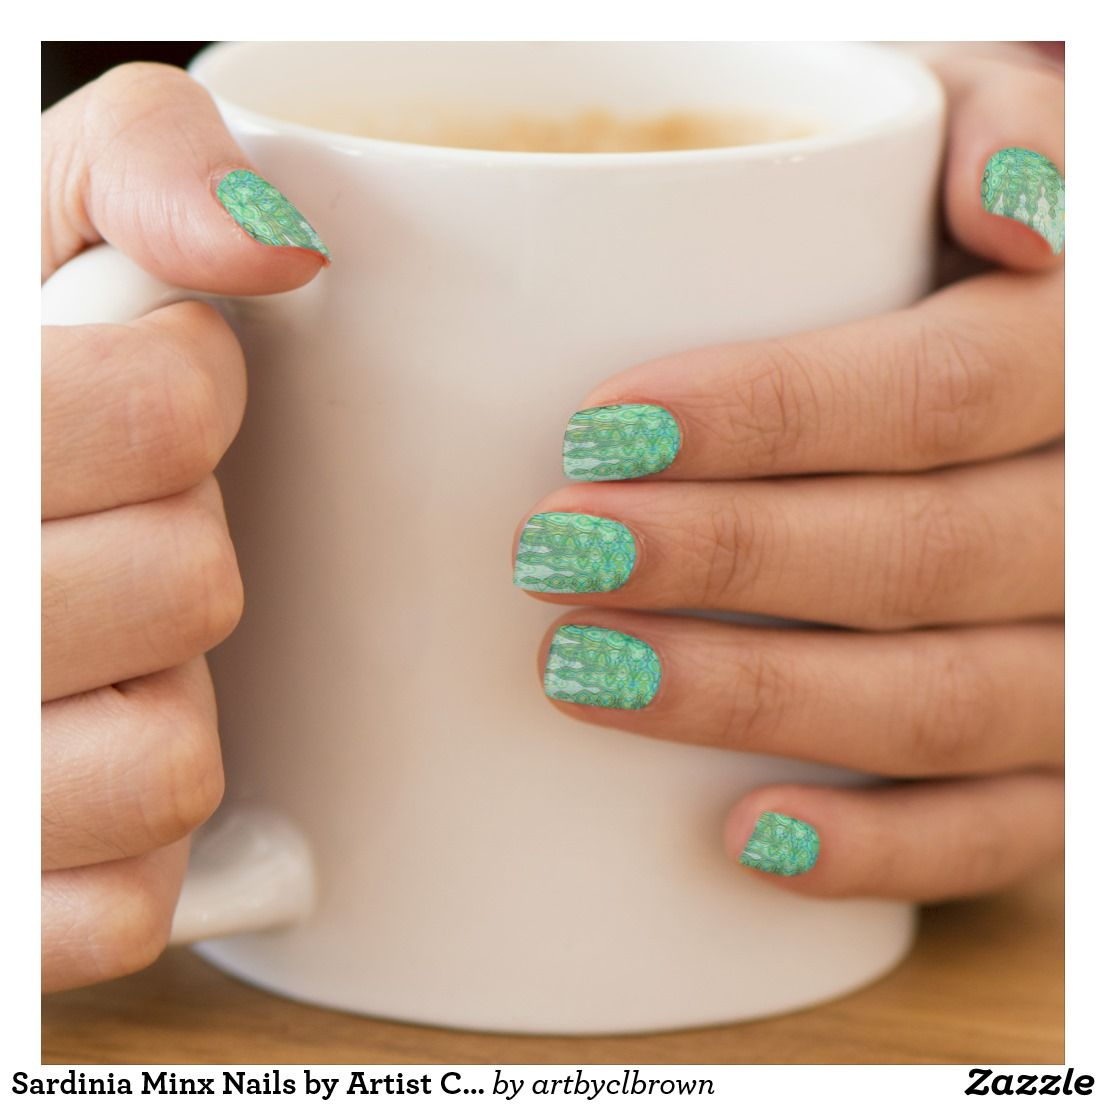 Extend fashion to your fingertips with Minx Nails! Worn by fashion ...